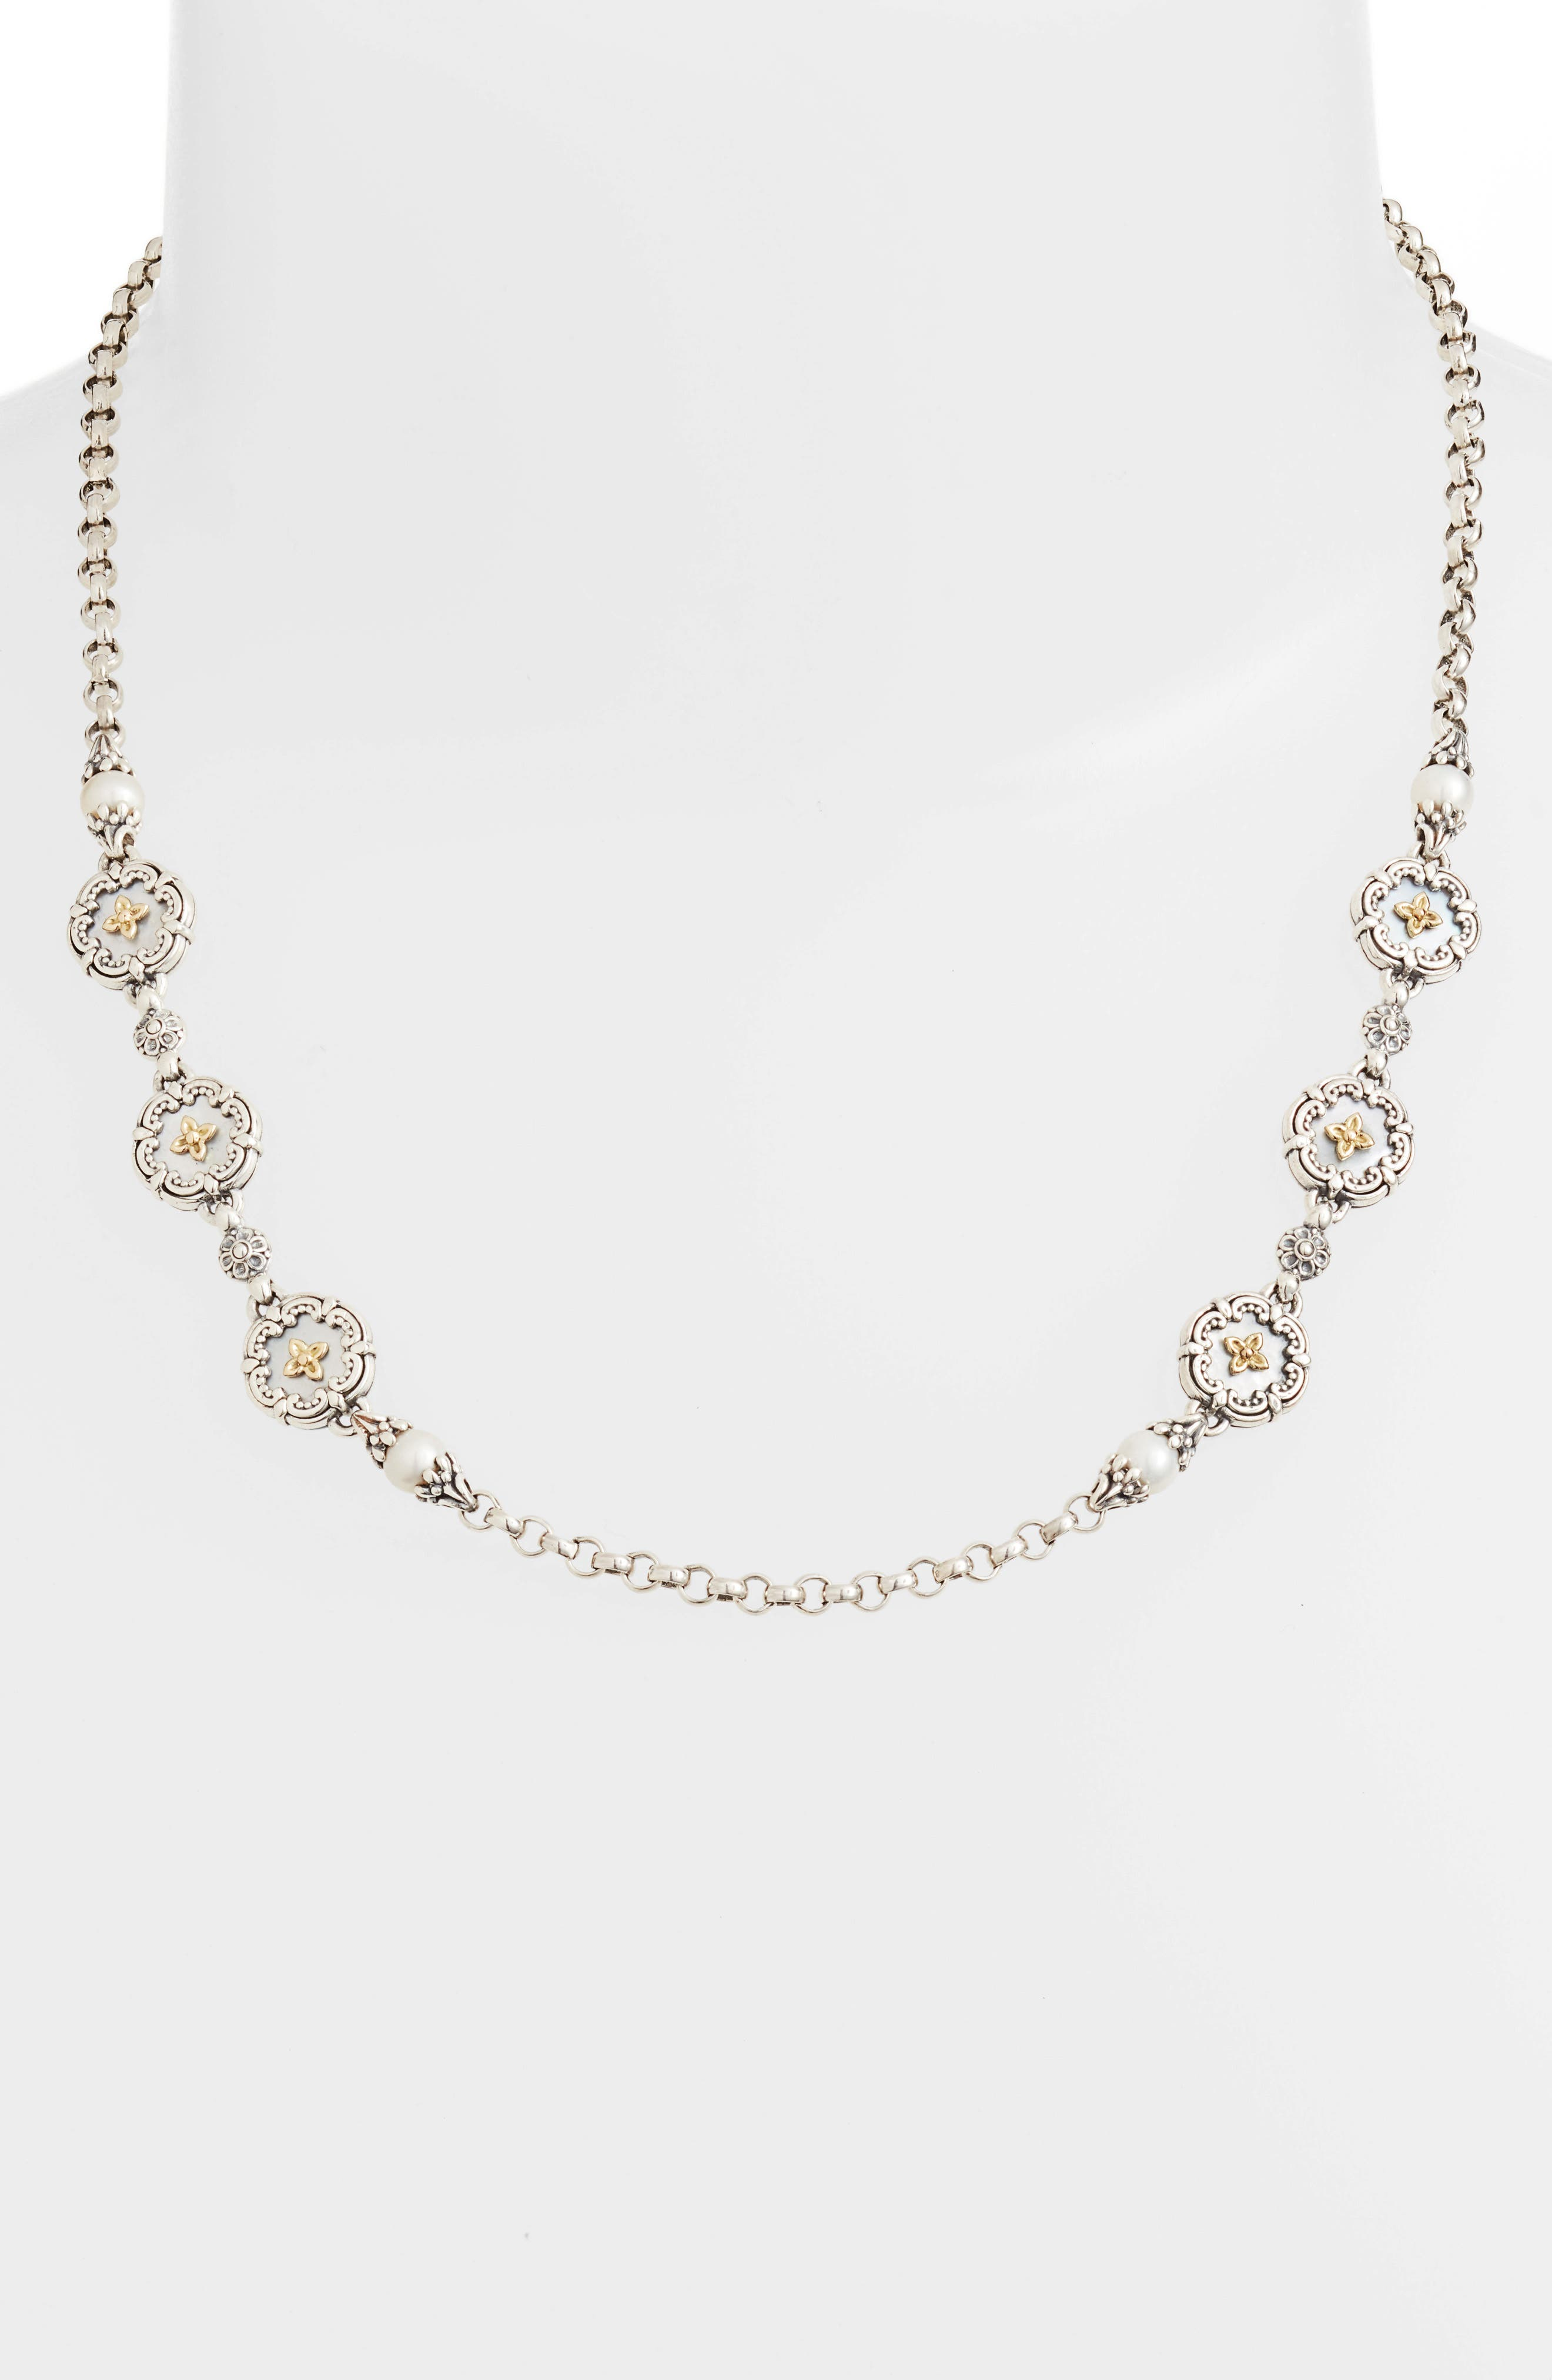 Etched Sterling & Pearl Necklace,                             Alternate thumbnail 2, color,                             040